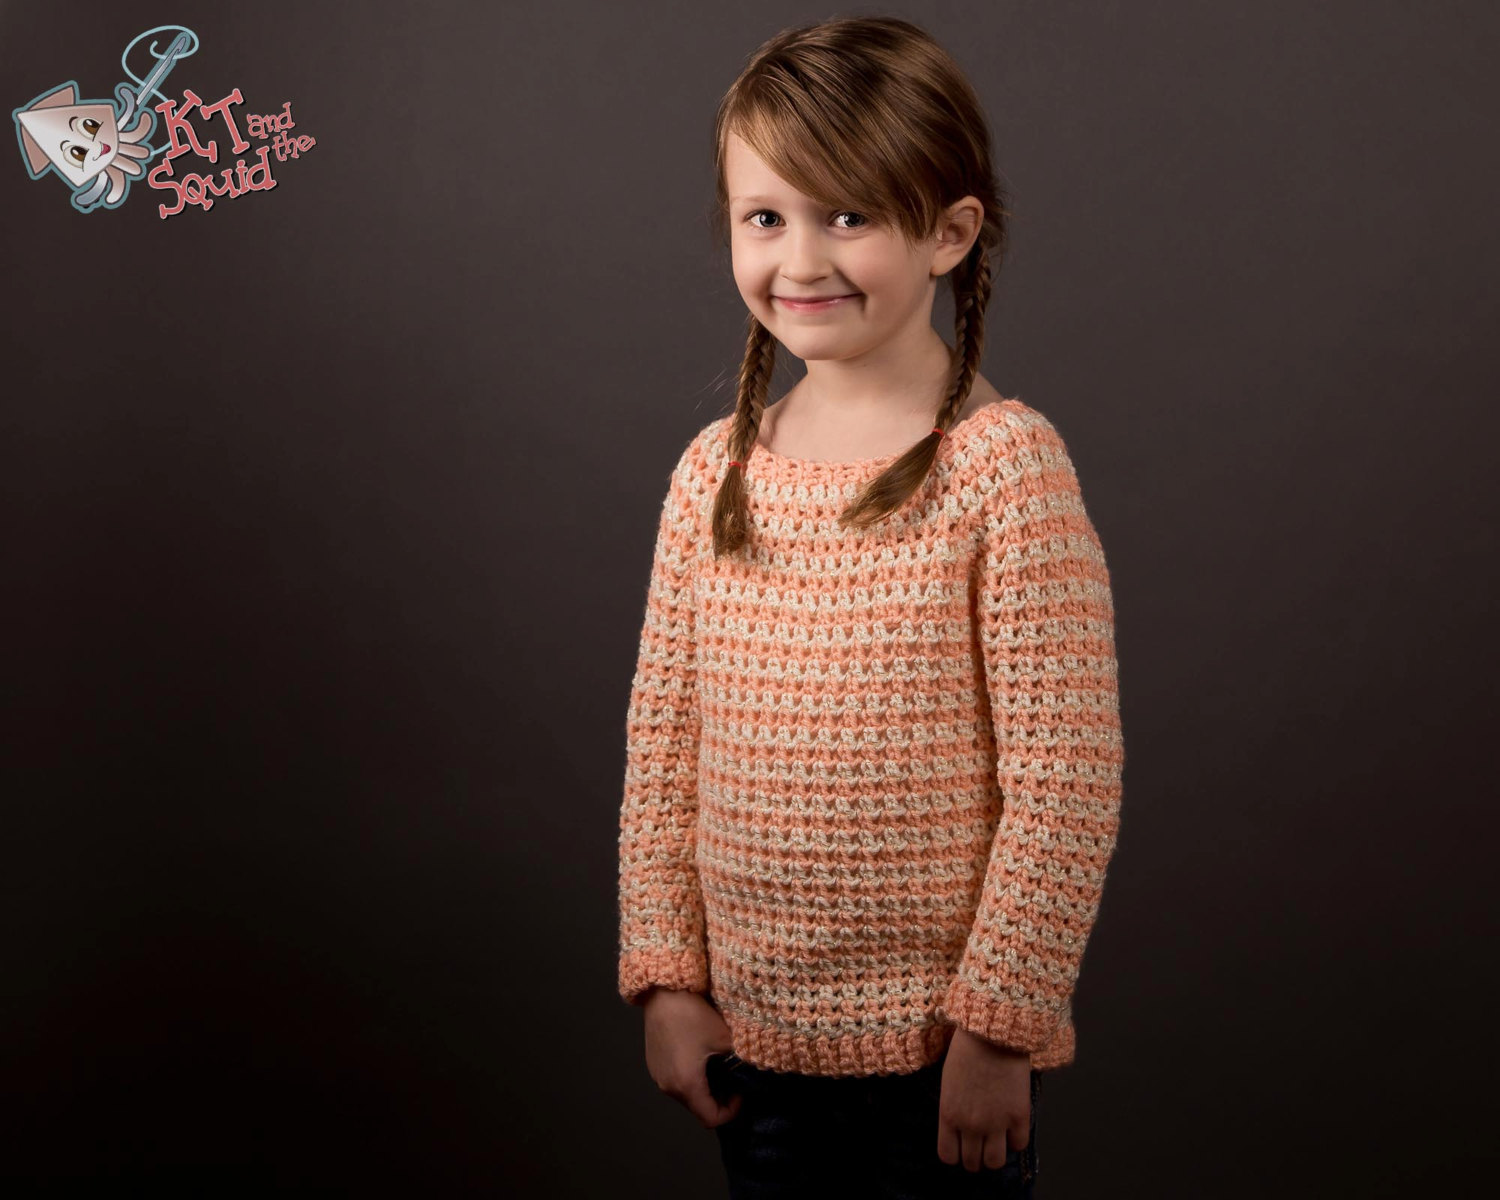 Cheer Sweater Kids Crochet Pattern Kt And The Squid